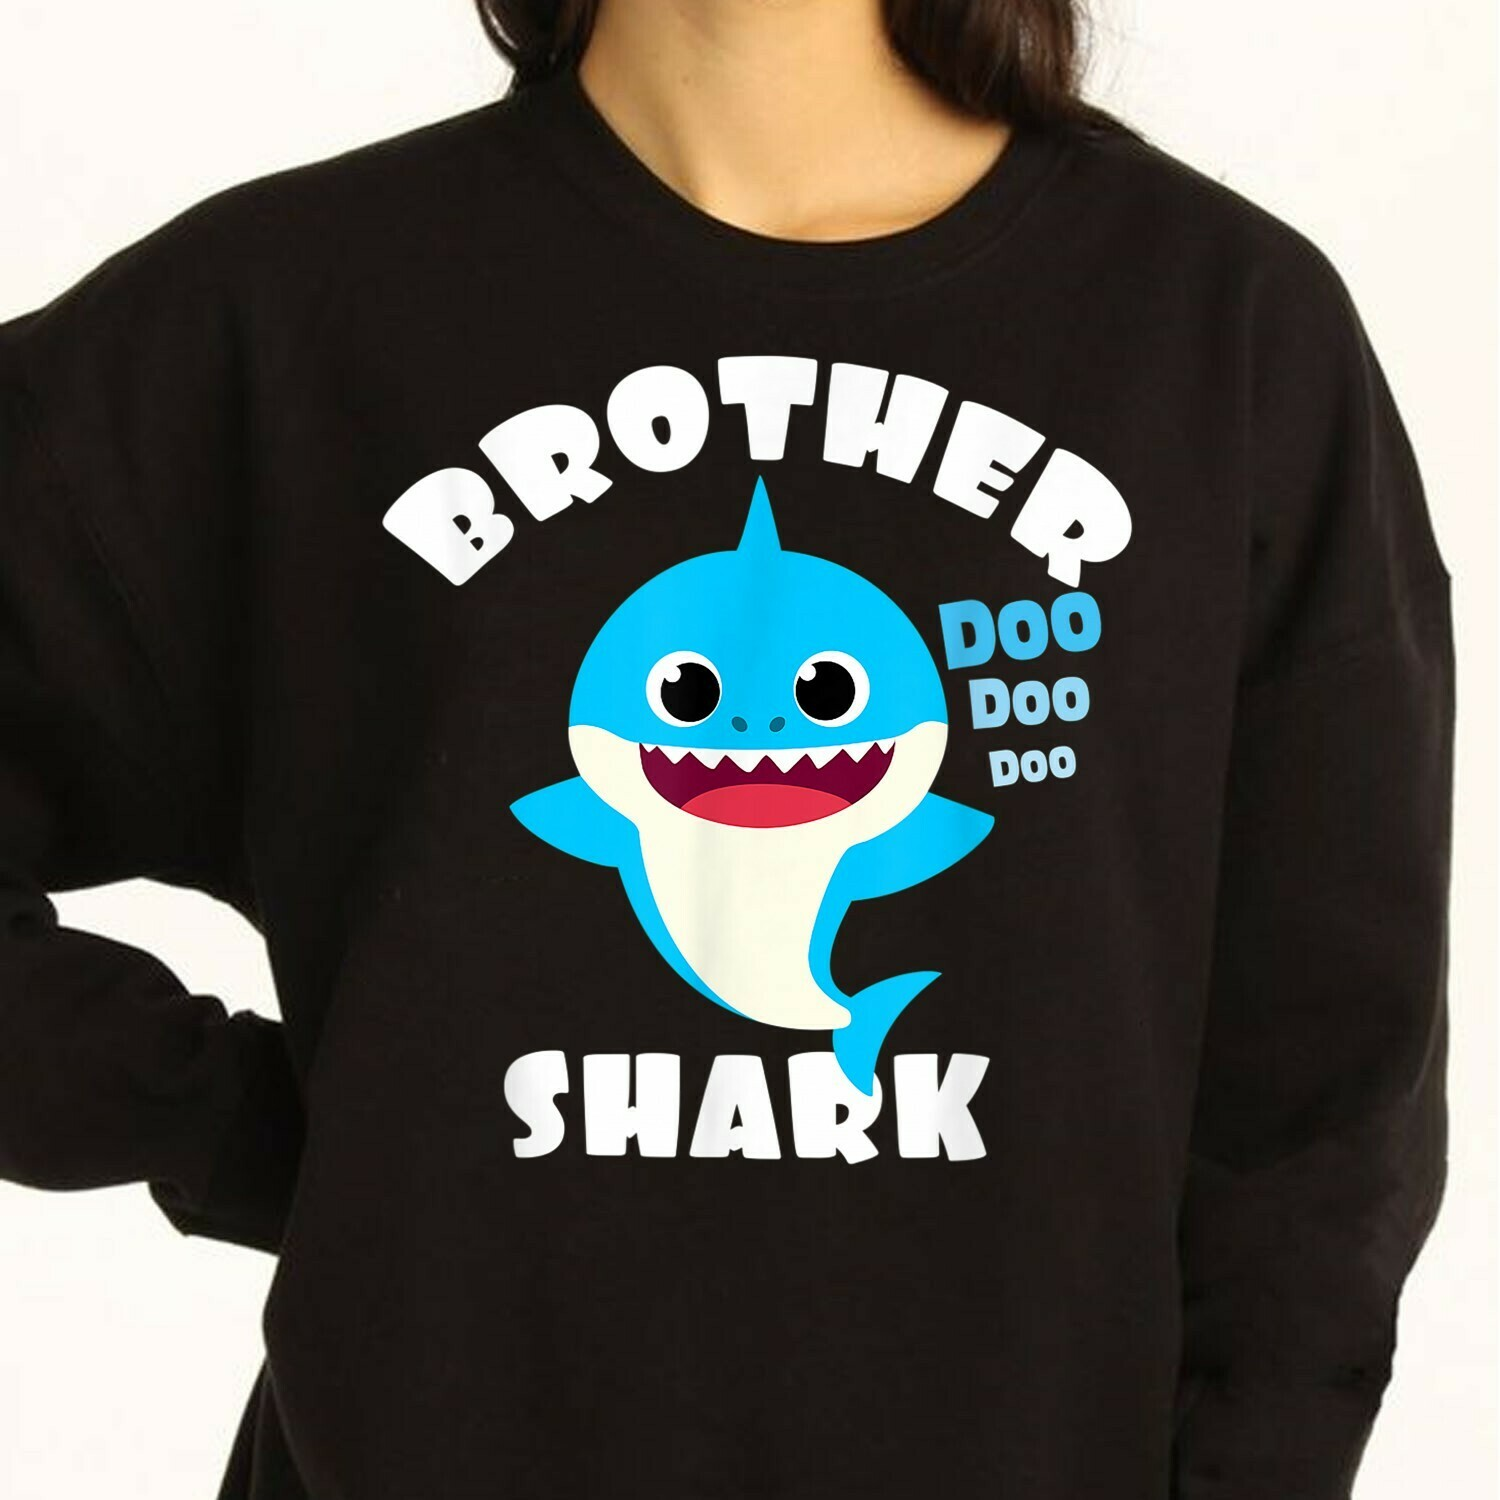 Brother Shark Pinkfong Custom Toddler Baby Shark Doo Doo Doo Family Vacation Shirts Birthday Shark Mommy Daddy Grandma Sister s T-Shirt Sweatshirt Hoodie Long Sleeve Tee Kids Youth Gifts Jolly Family